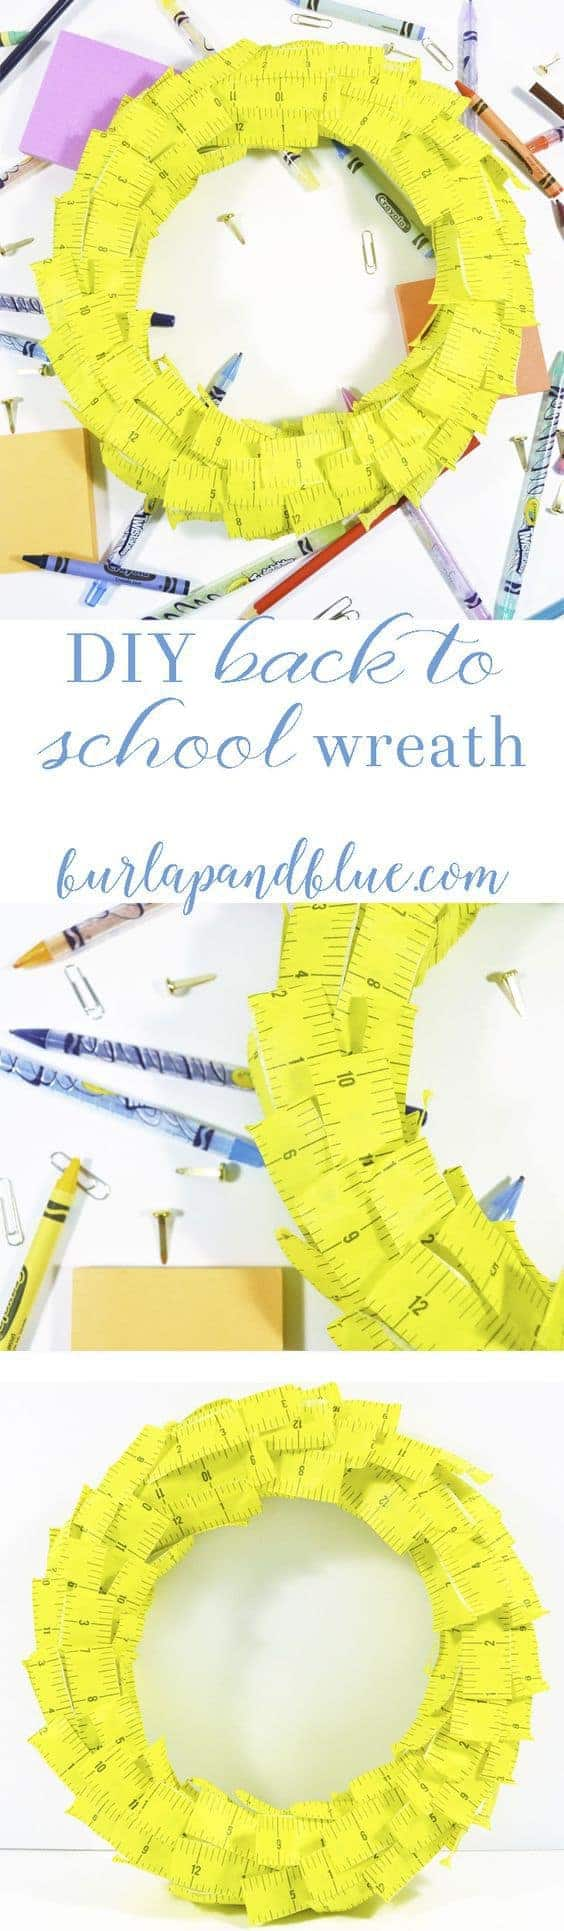 Back to School Ideas {Make a Back to School Wreath}